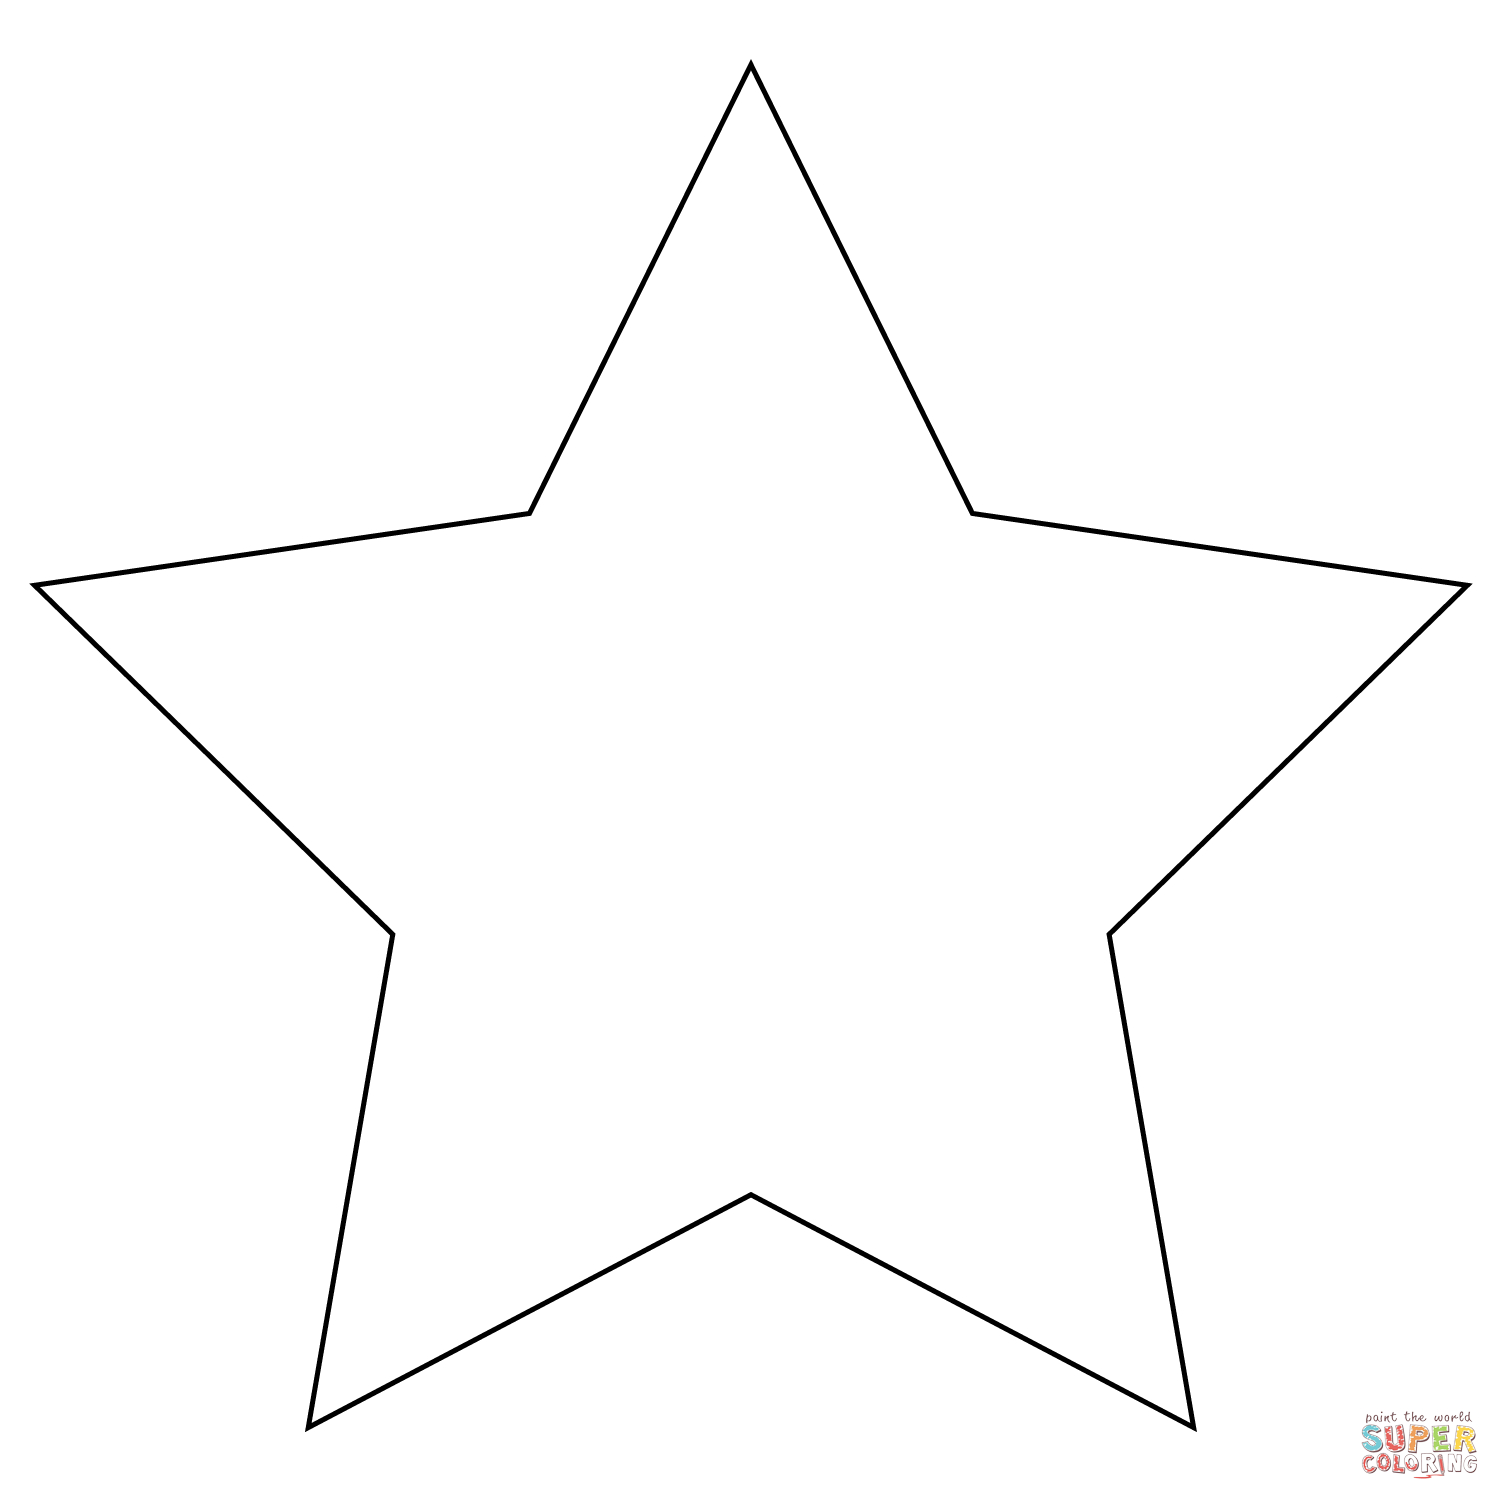 Five Pointed Star Coloring Page | Free Printable Coloring Pages - Star Of David Template Free Printable